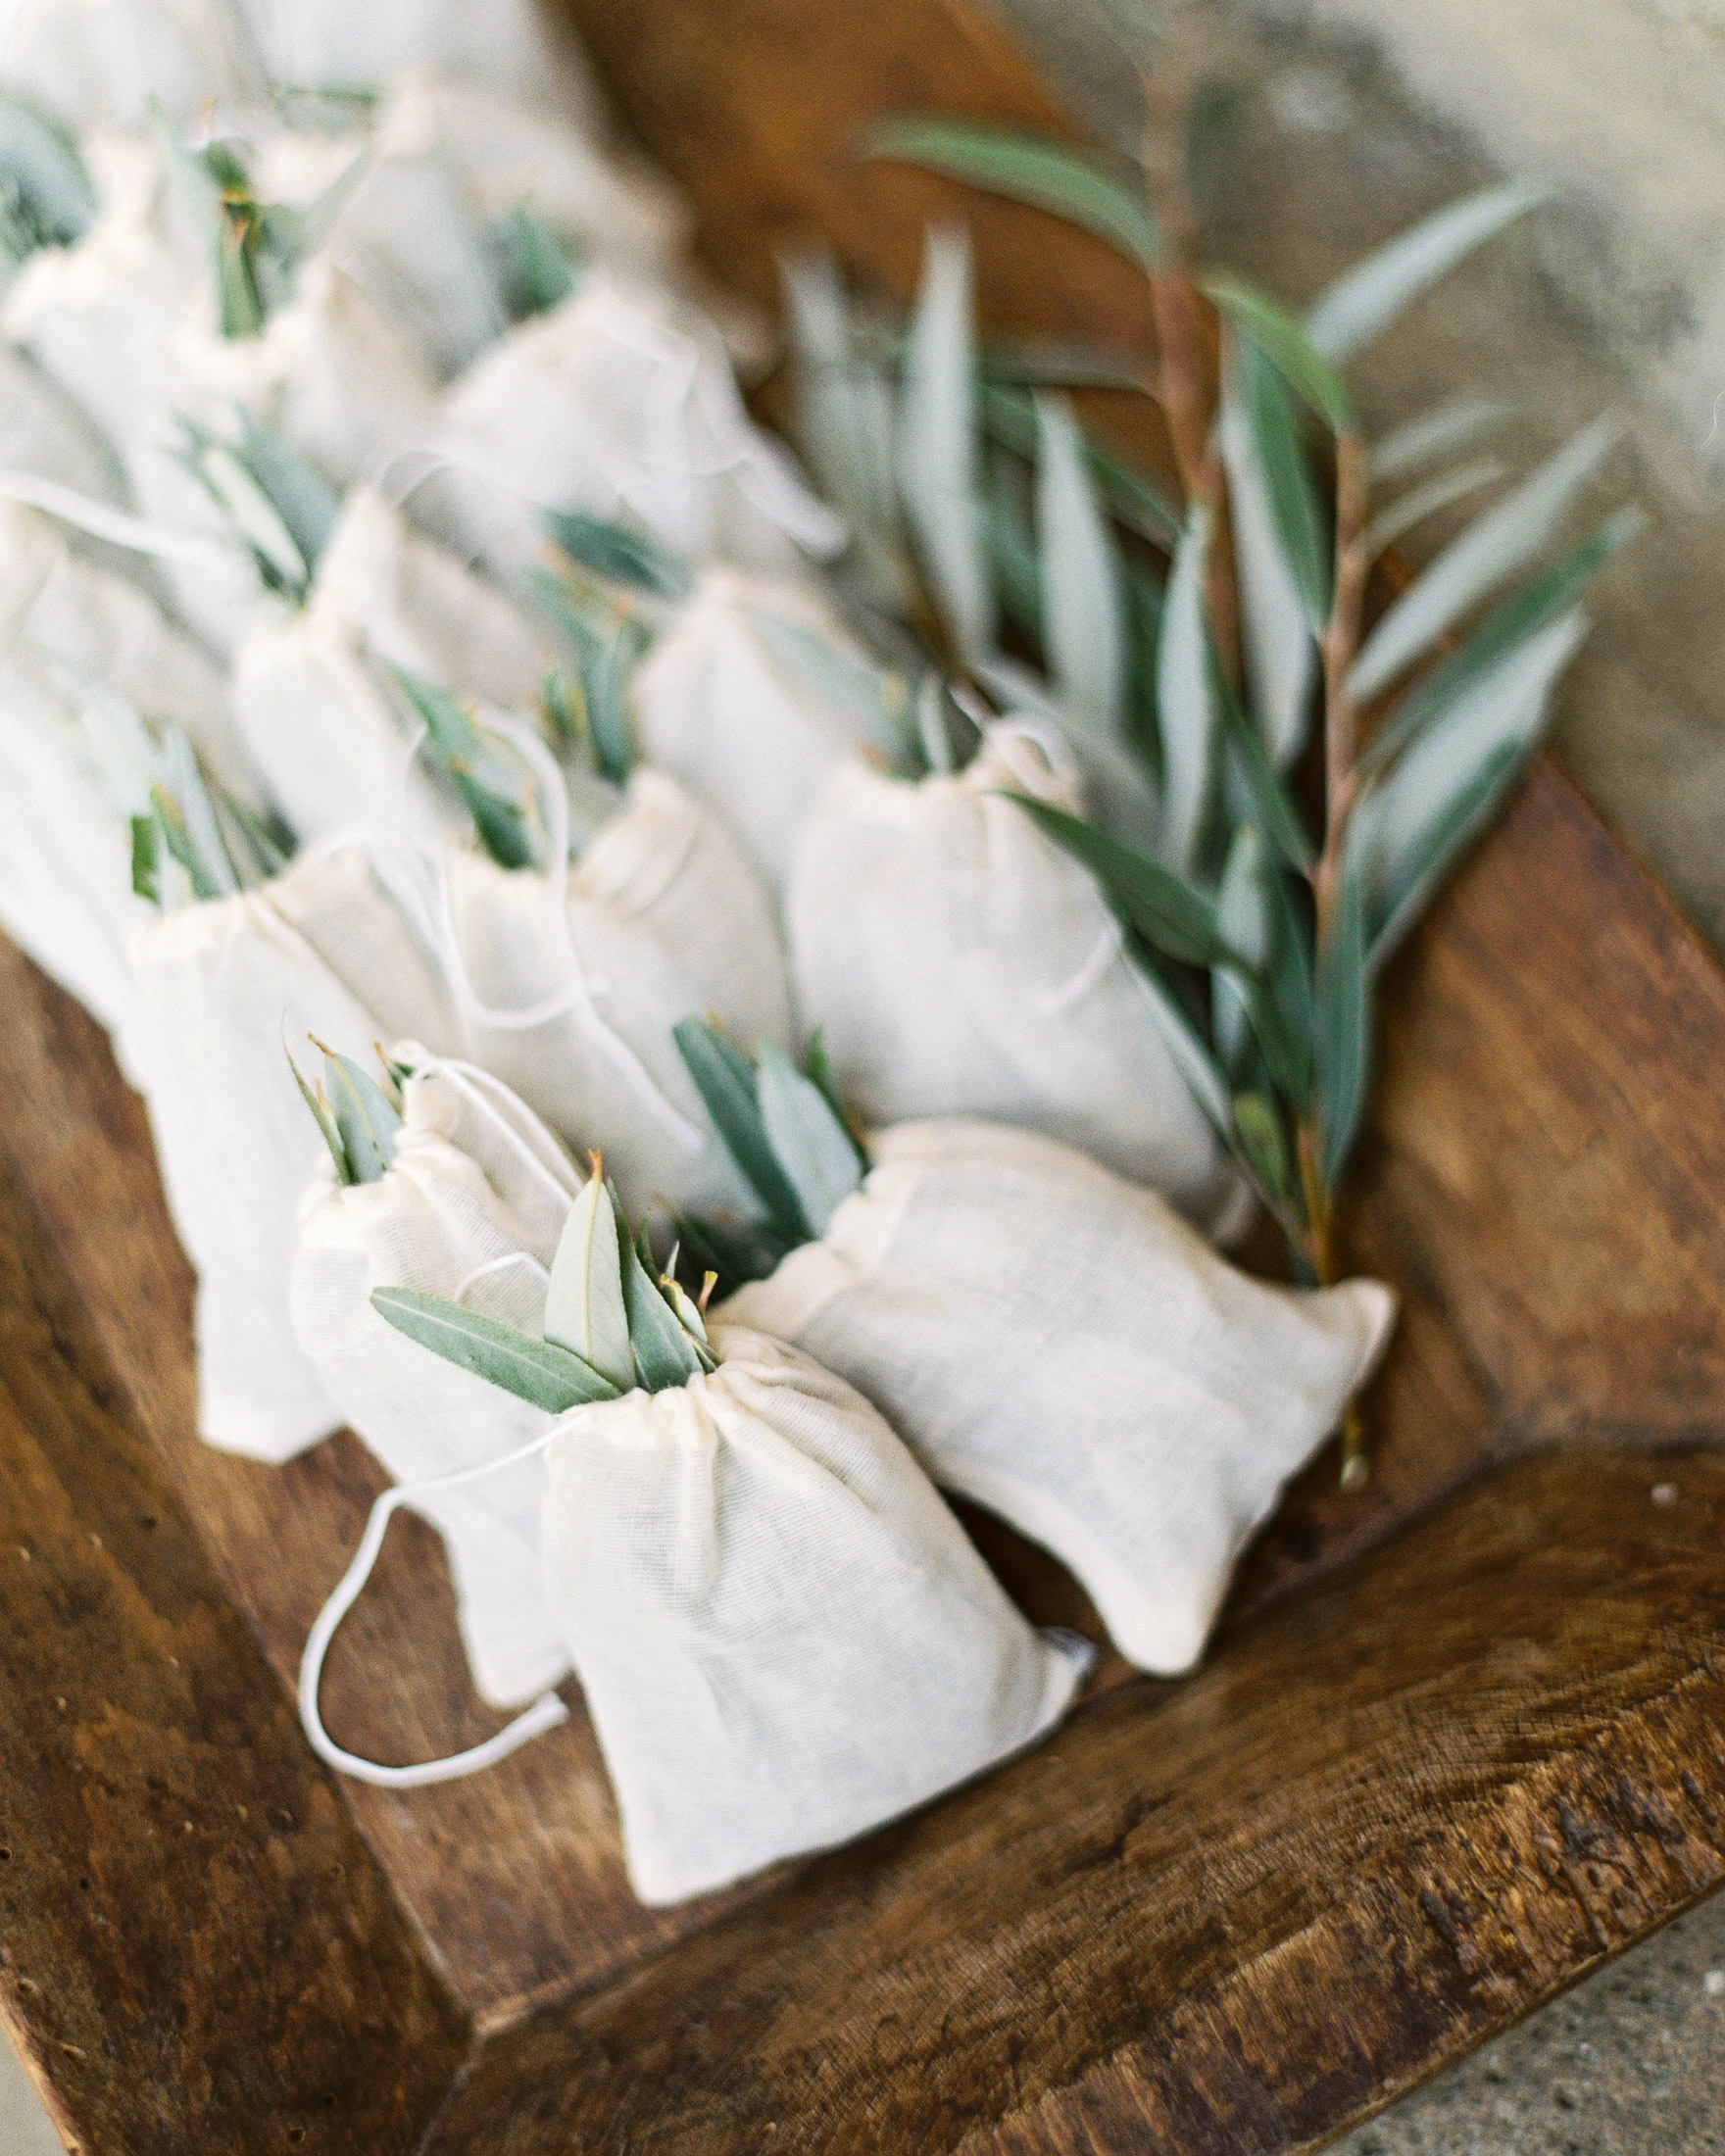 christine-dagan-wedding-toss-olive-leaves-4282_14-s113011-0616.jpg